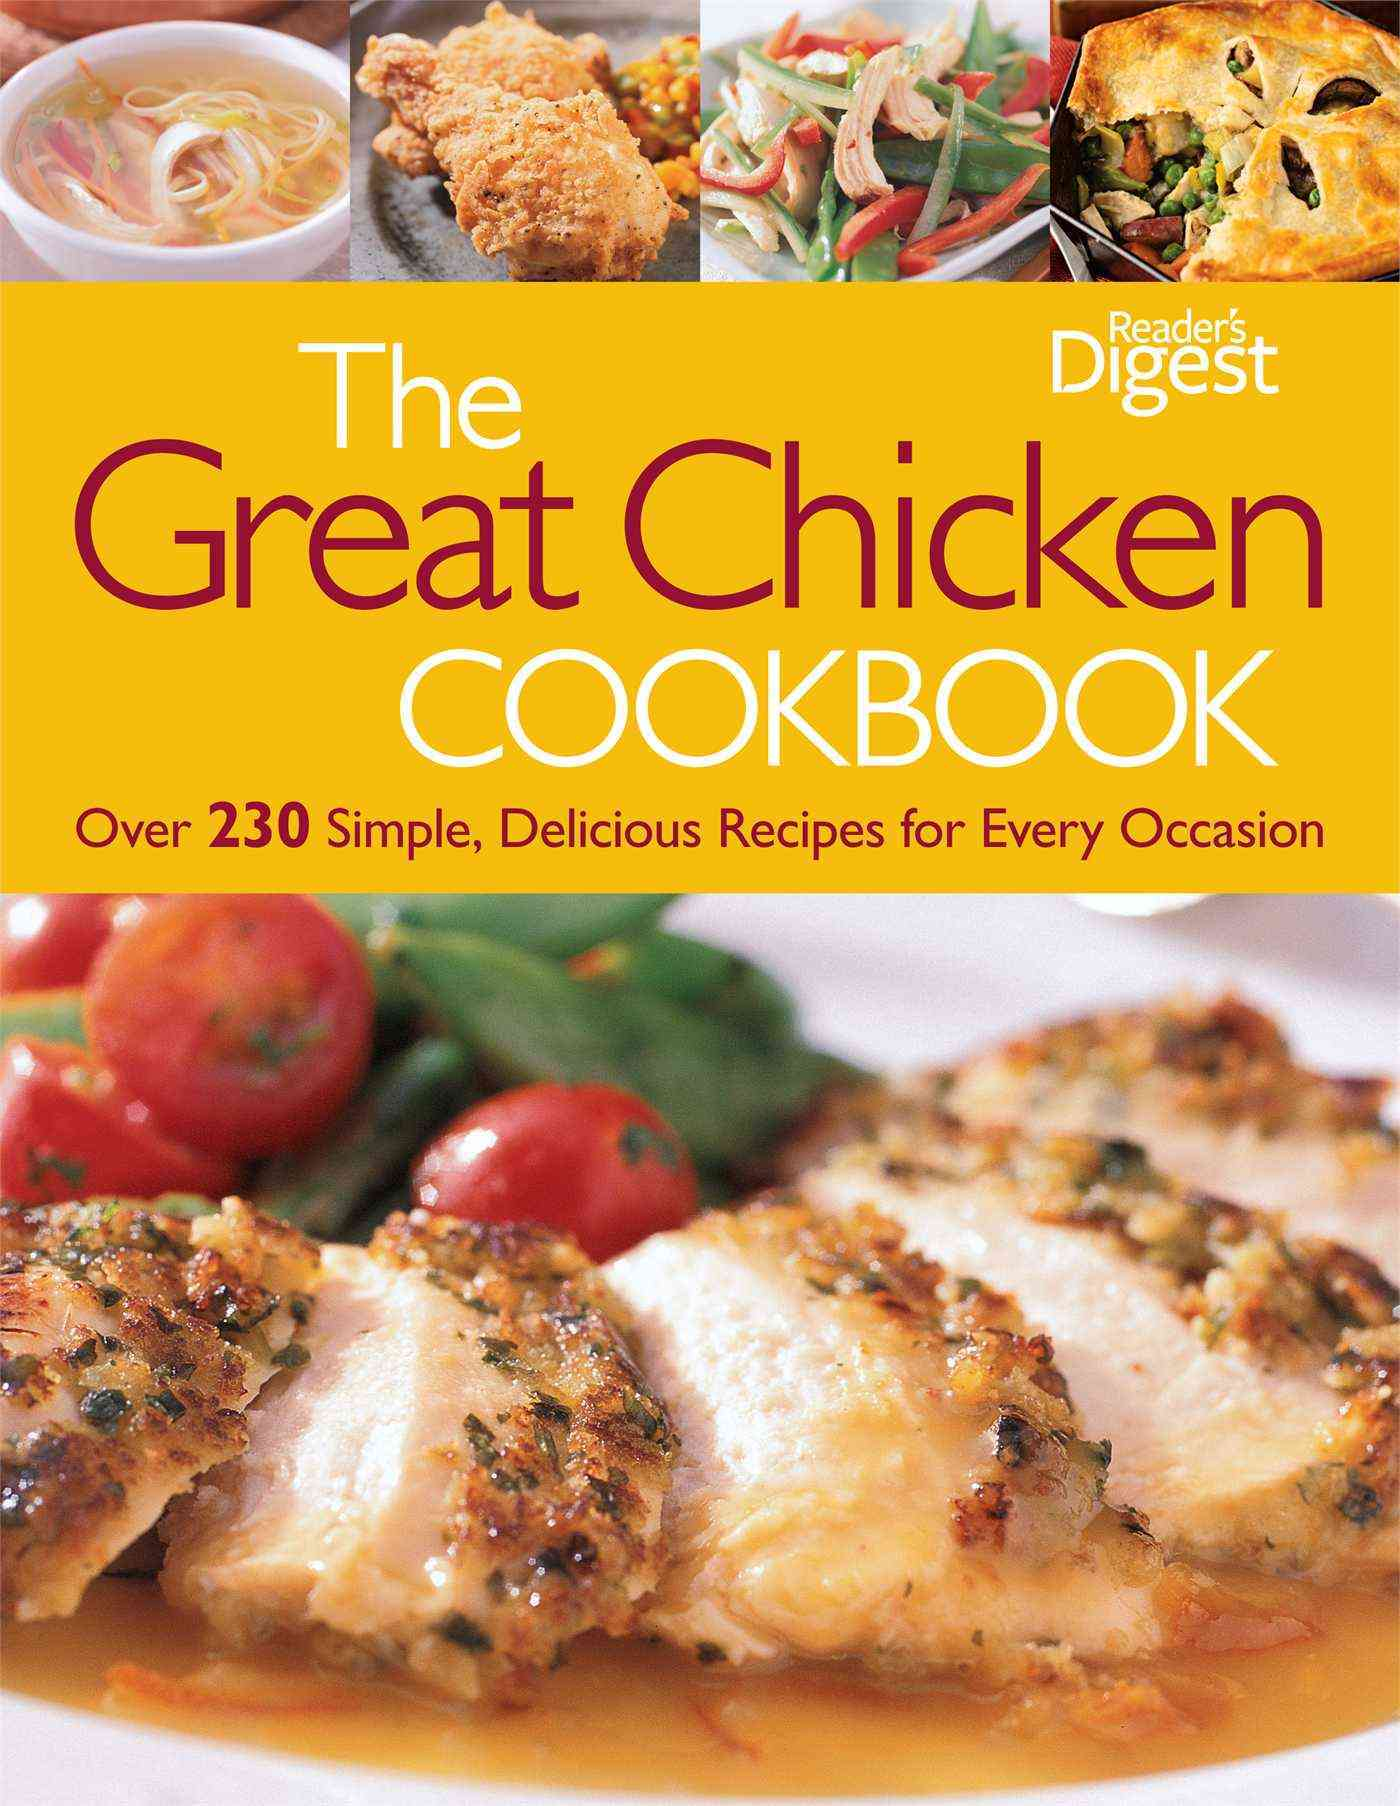 The Great Chicken Cookbook: Over 230 Simple, Delicious Recipes for Every Occasion (Paperback)